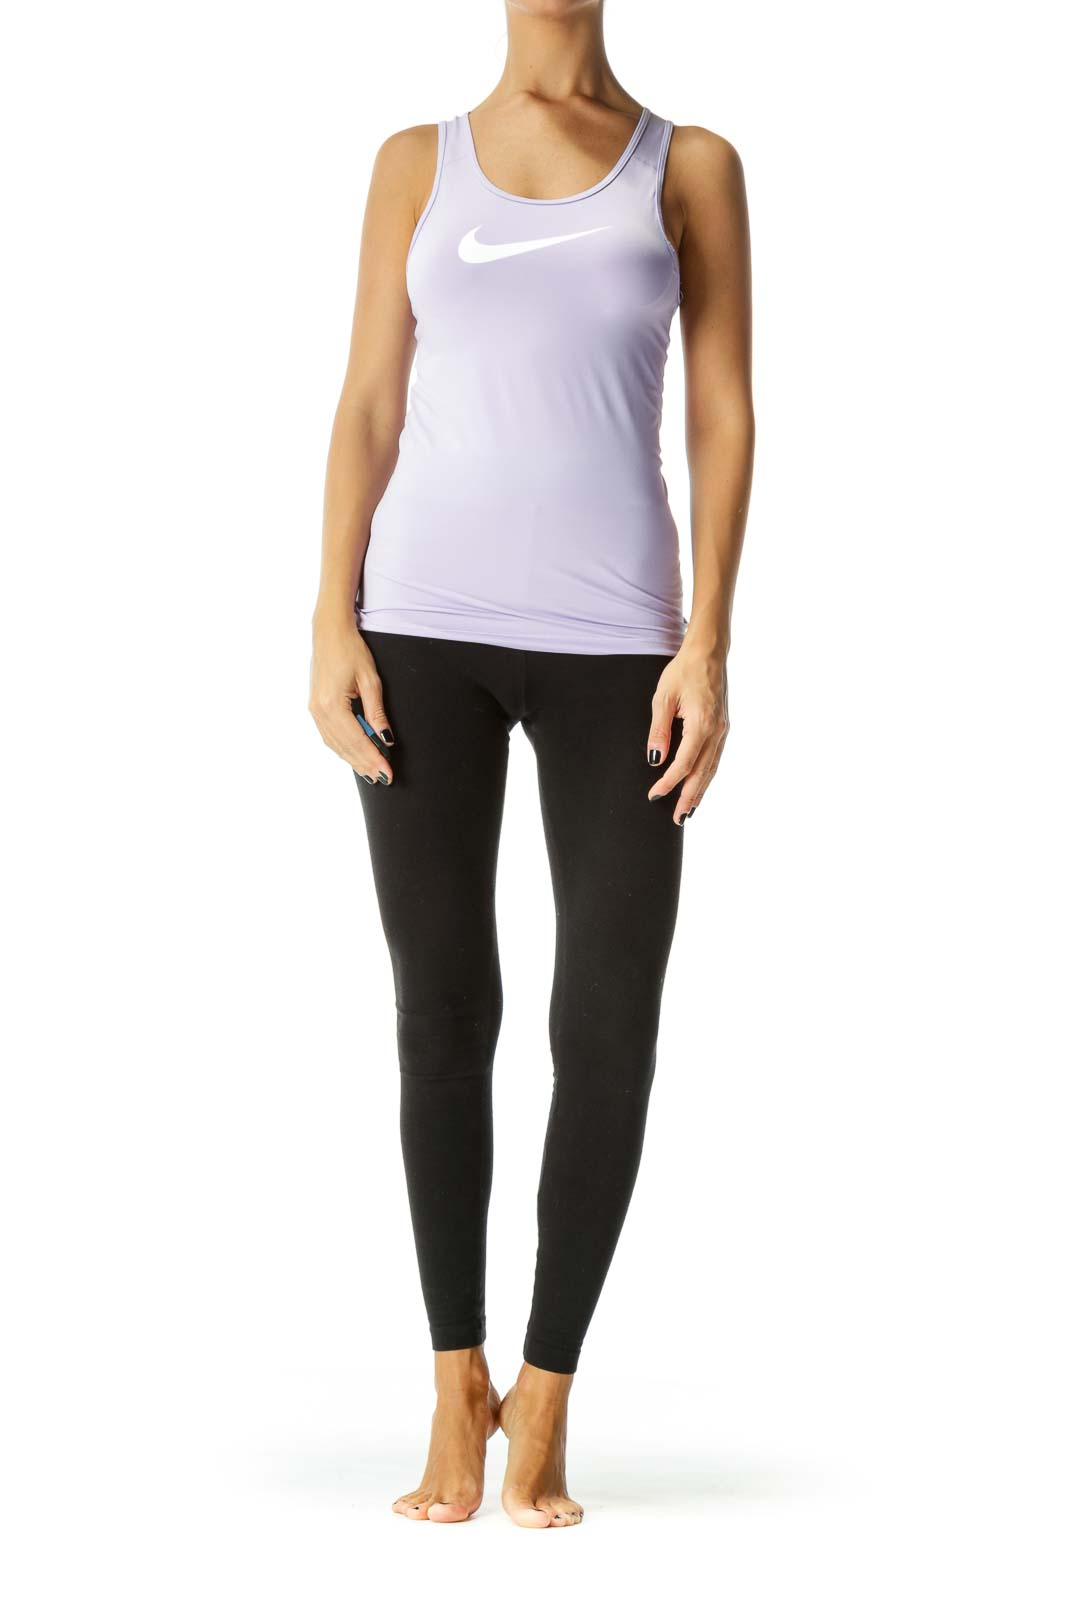 Lilac Purple Work-Out Tank with White Swoosh Logo